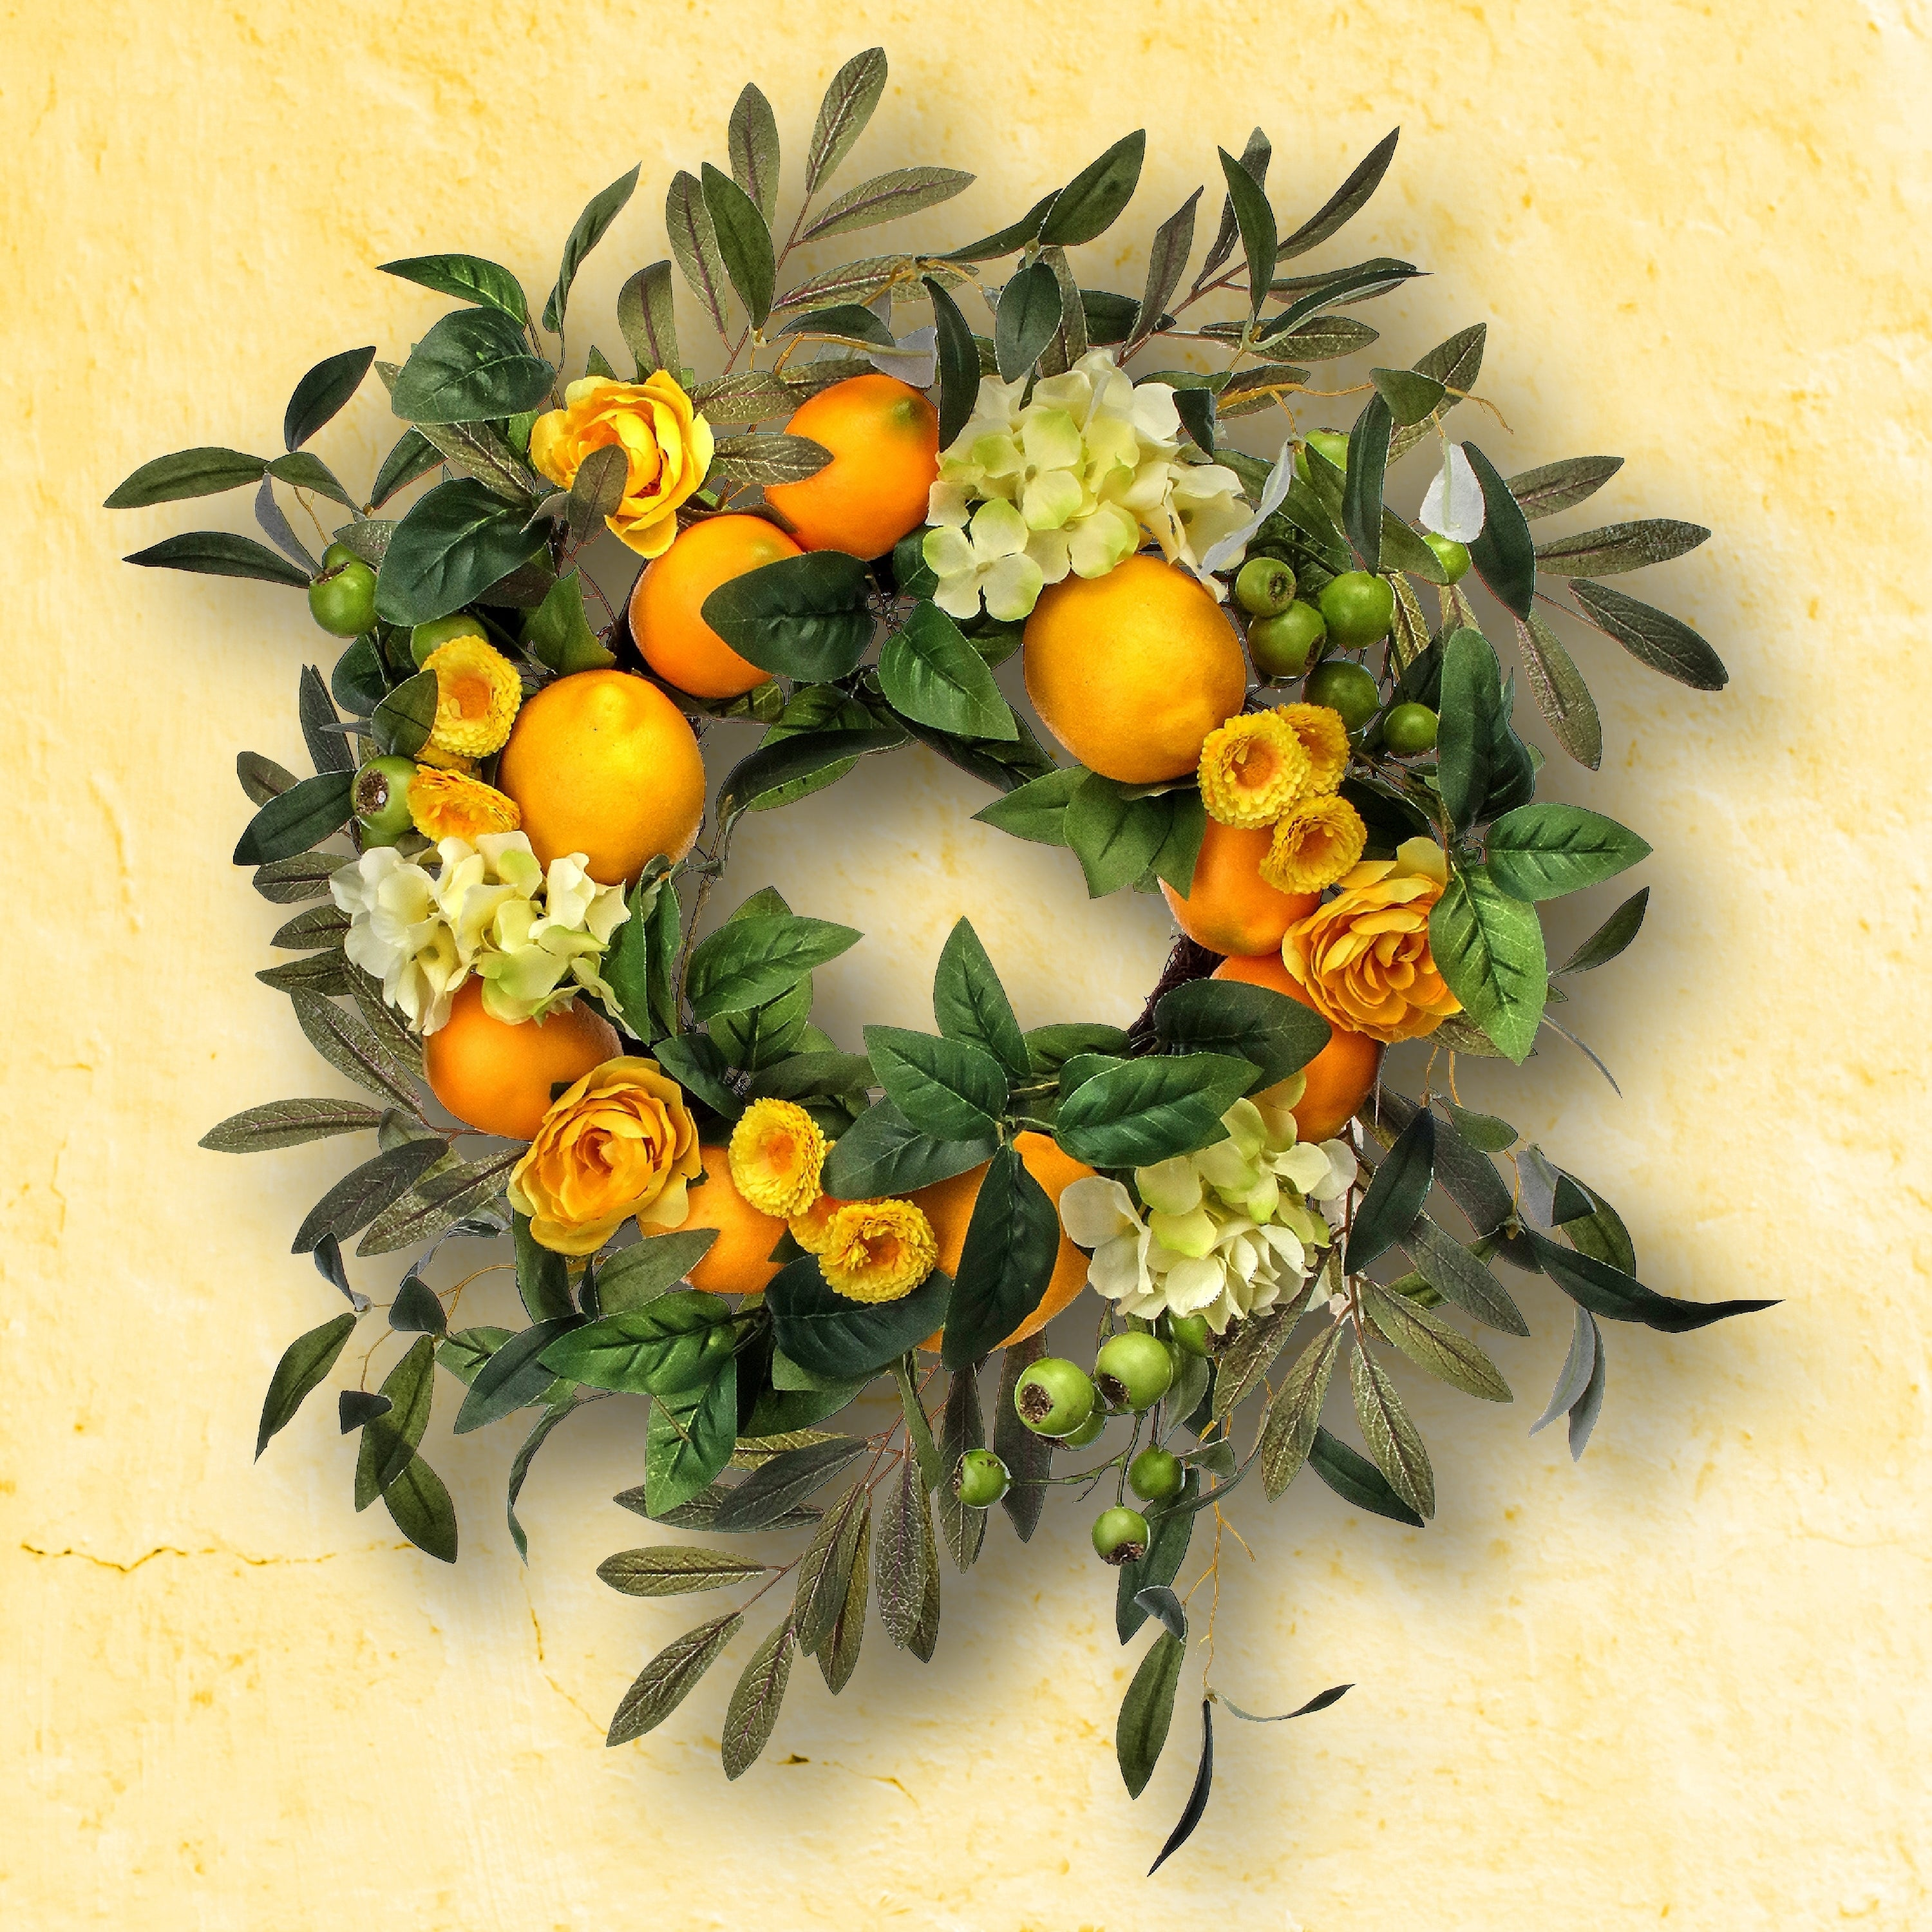 Lemonberry wreath with greenery and white flowers spring and summer wreath